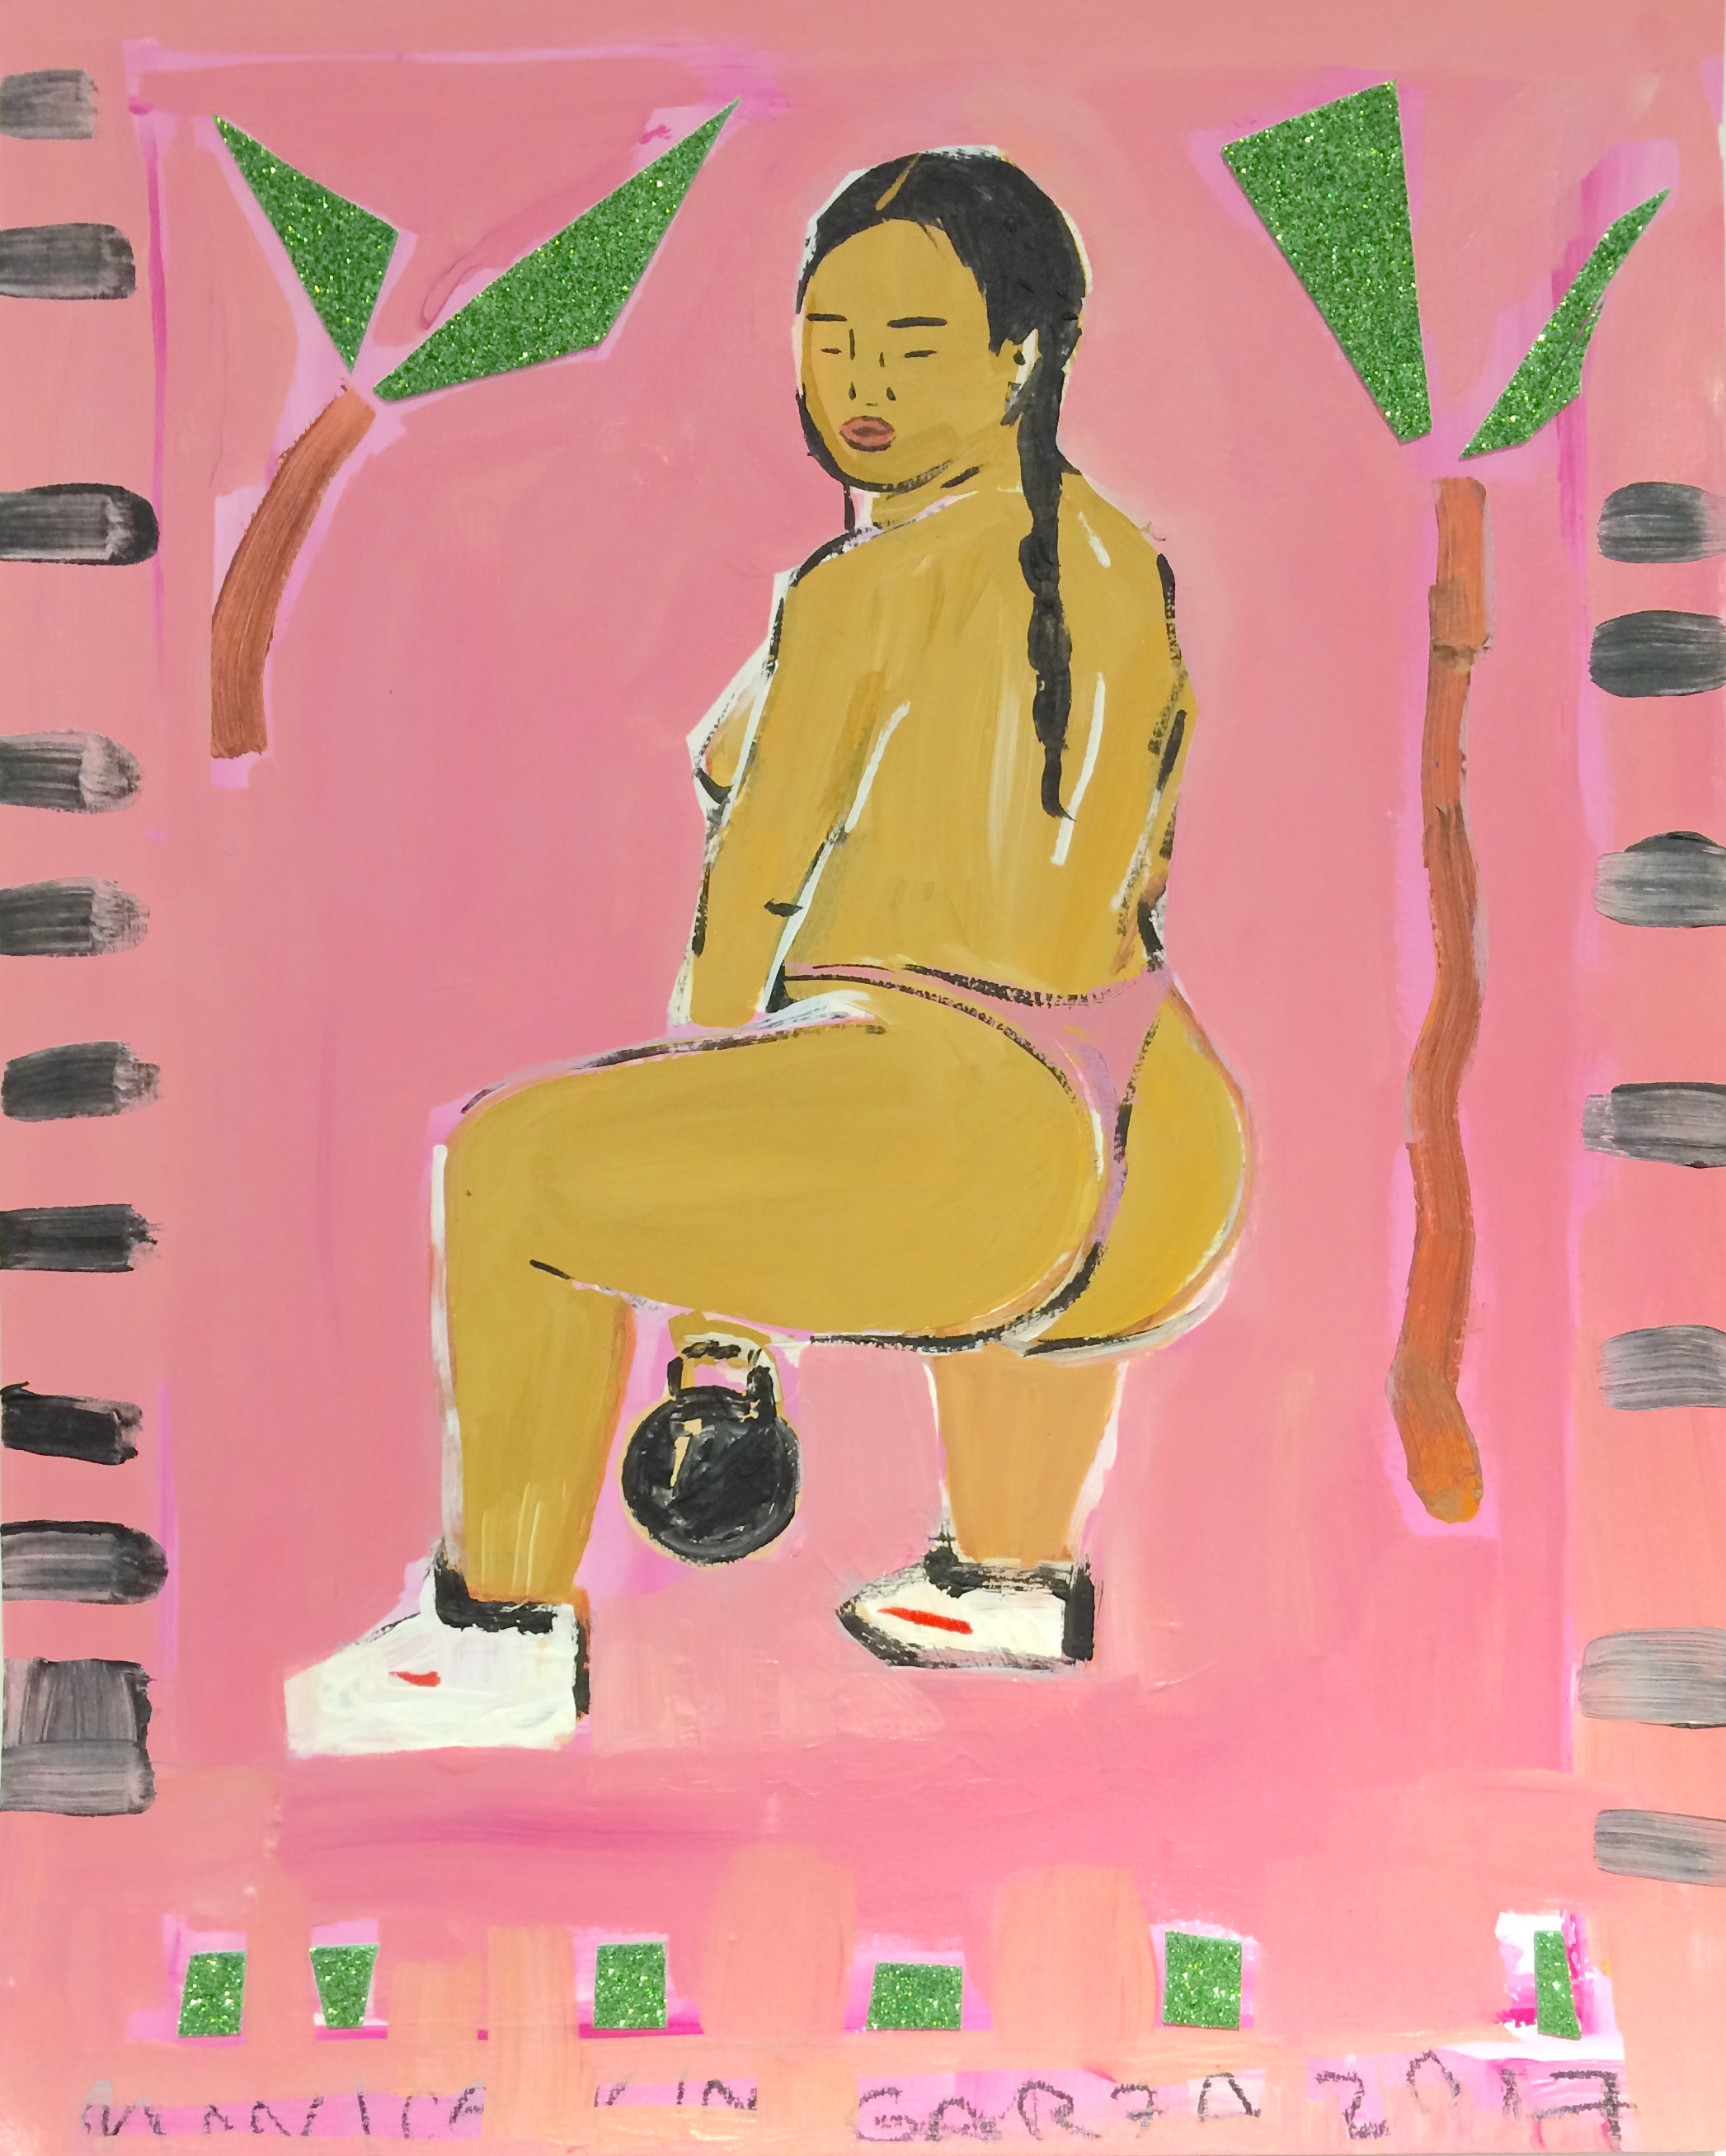 Monica Kim Garza / Kettle Ball Drop / 2018 / Acrylic on canvas / 20 x 15 inches